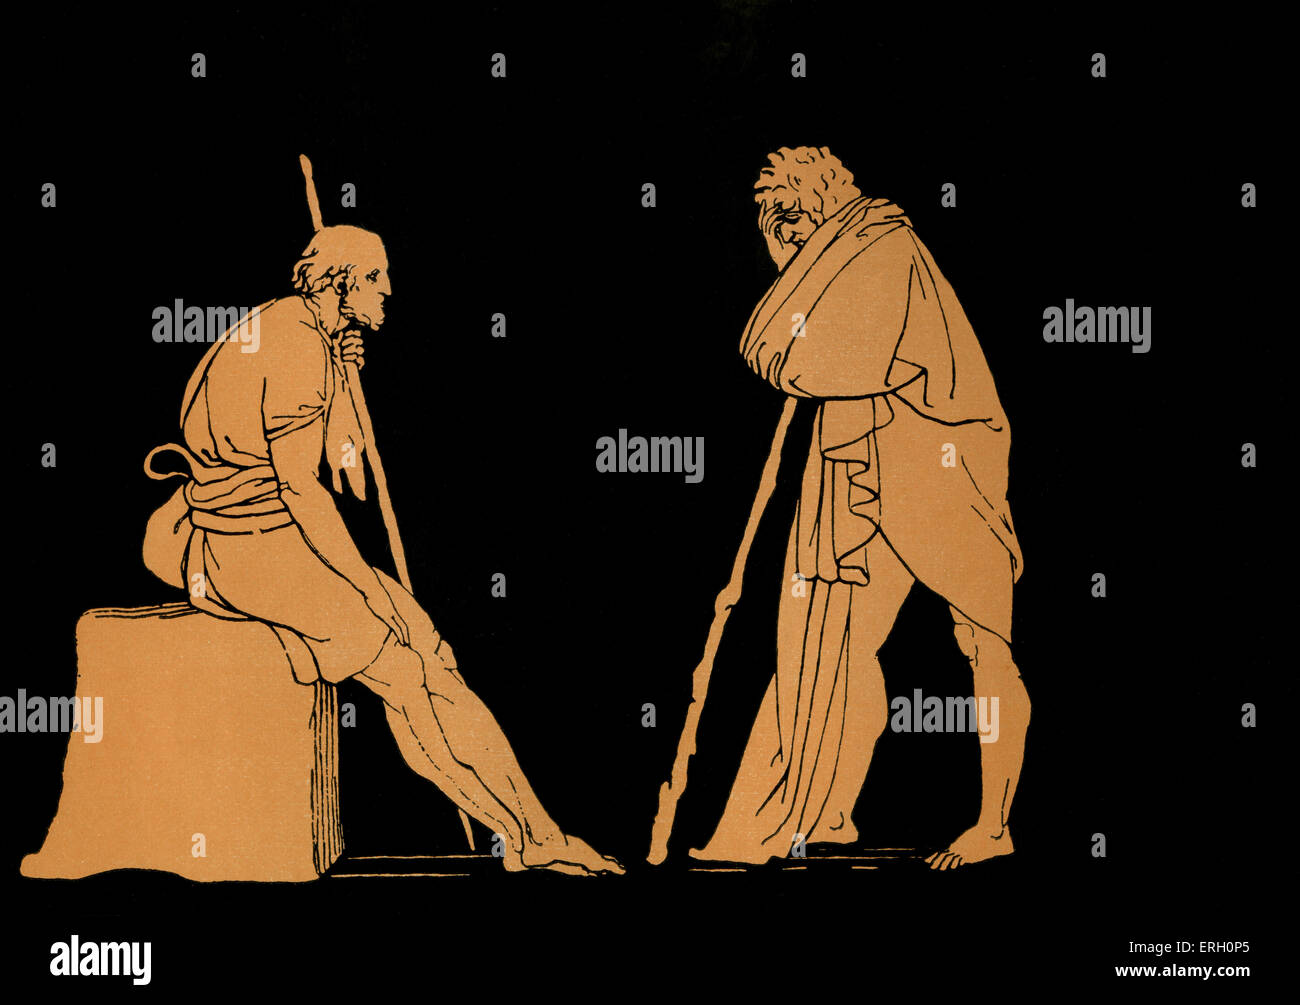 the odyssey and ulysses